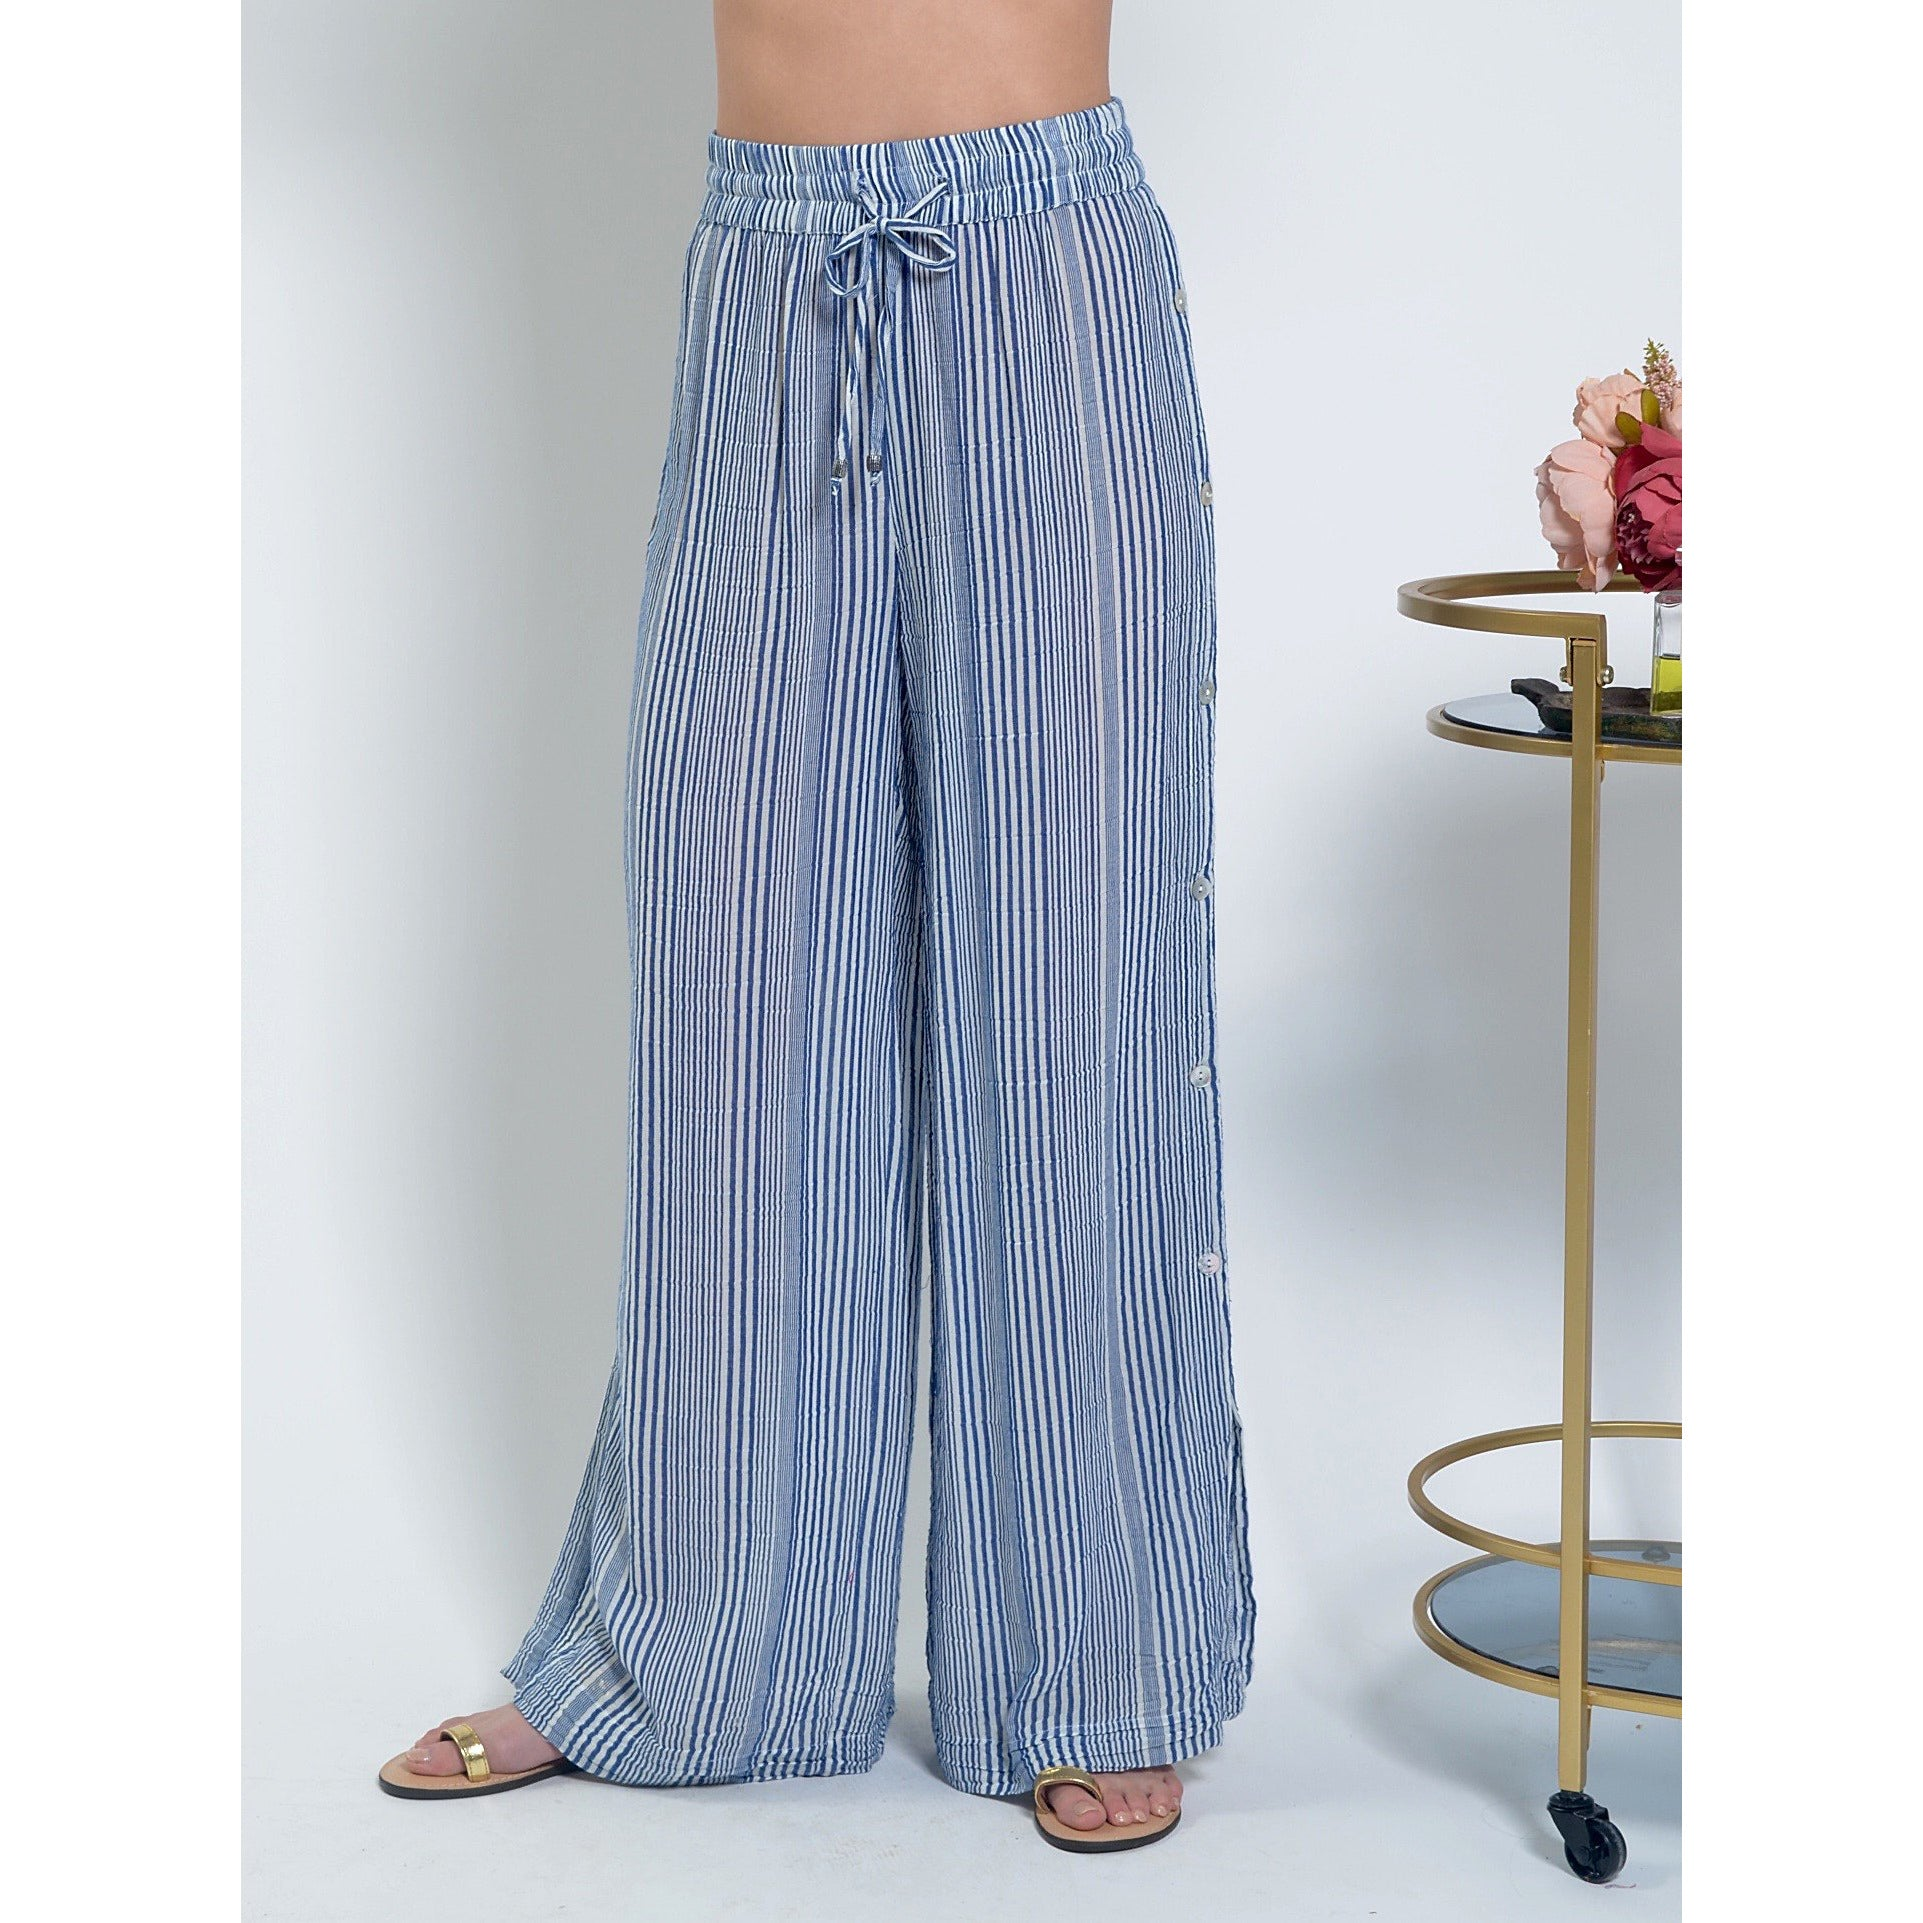 Lula Soul Paros Pant in Blue white stripe